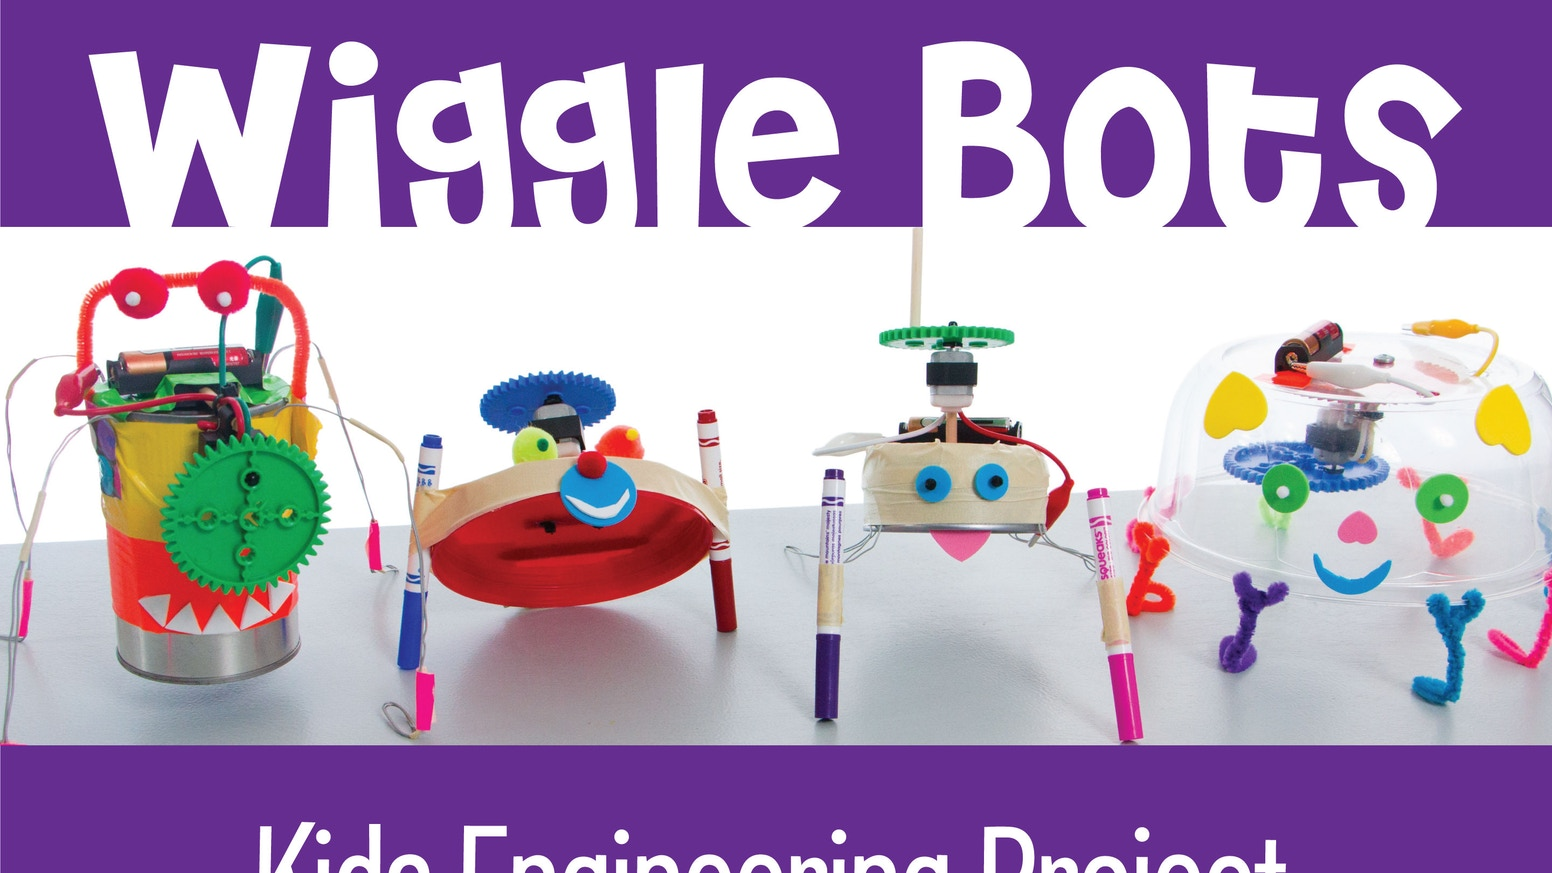 Wiggle-Bots + Kids = Future Innovators, and a lot of fun